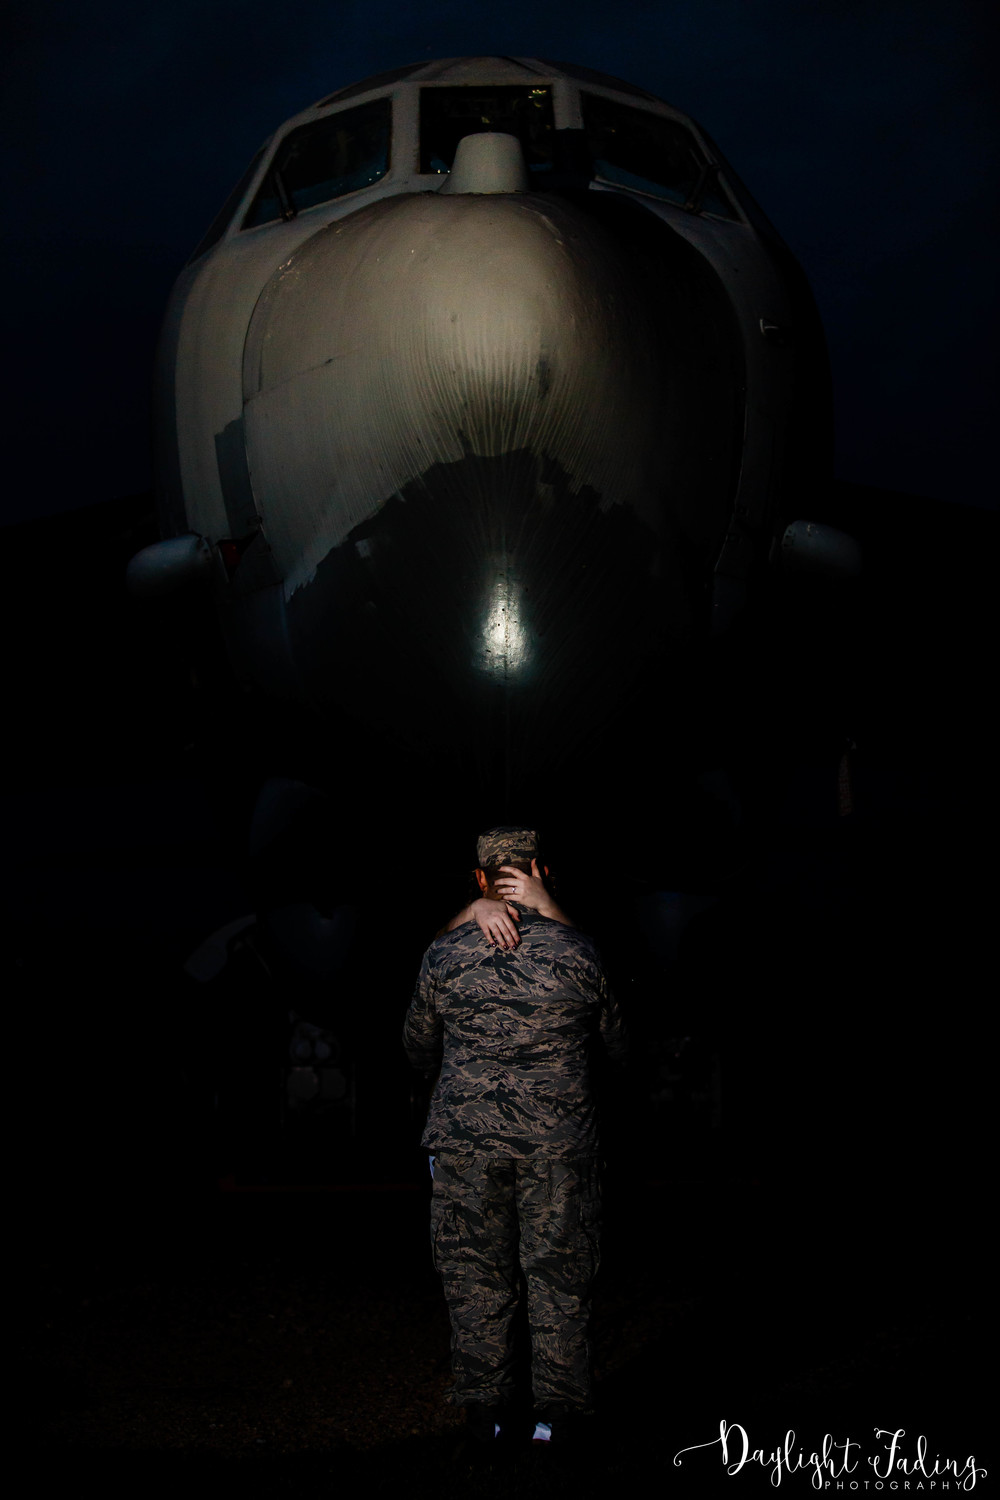 Military Engagement Photo at Barksdale Air Force Base in Bossier City, Louisiana - daylightfadingphotography.com